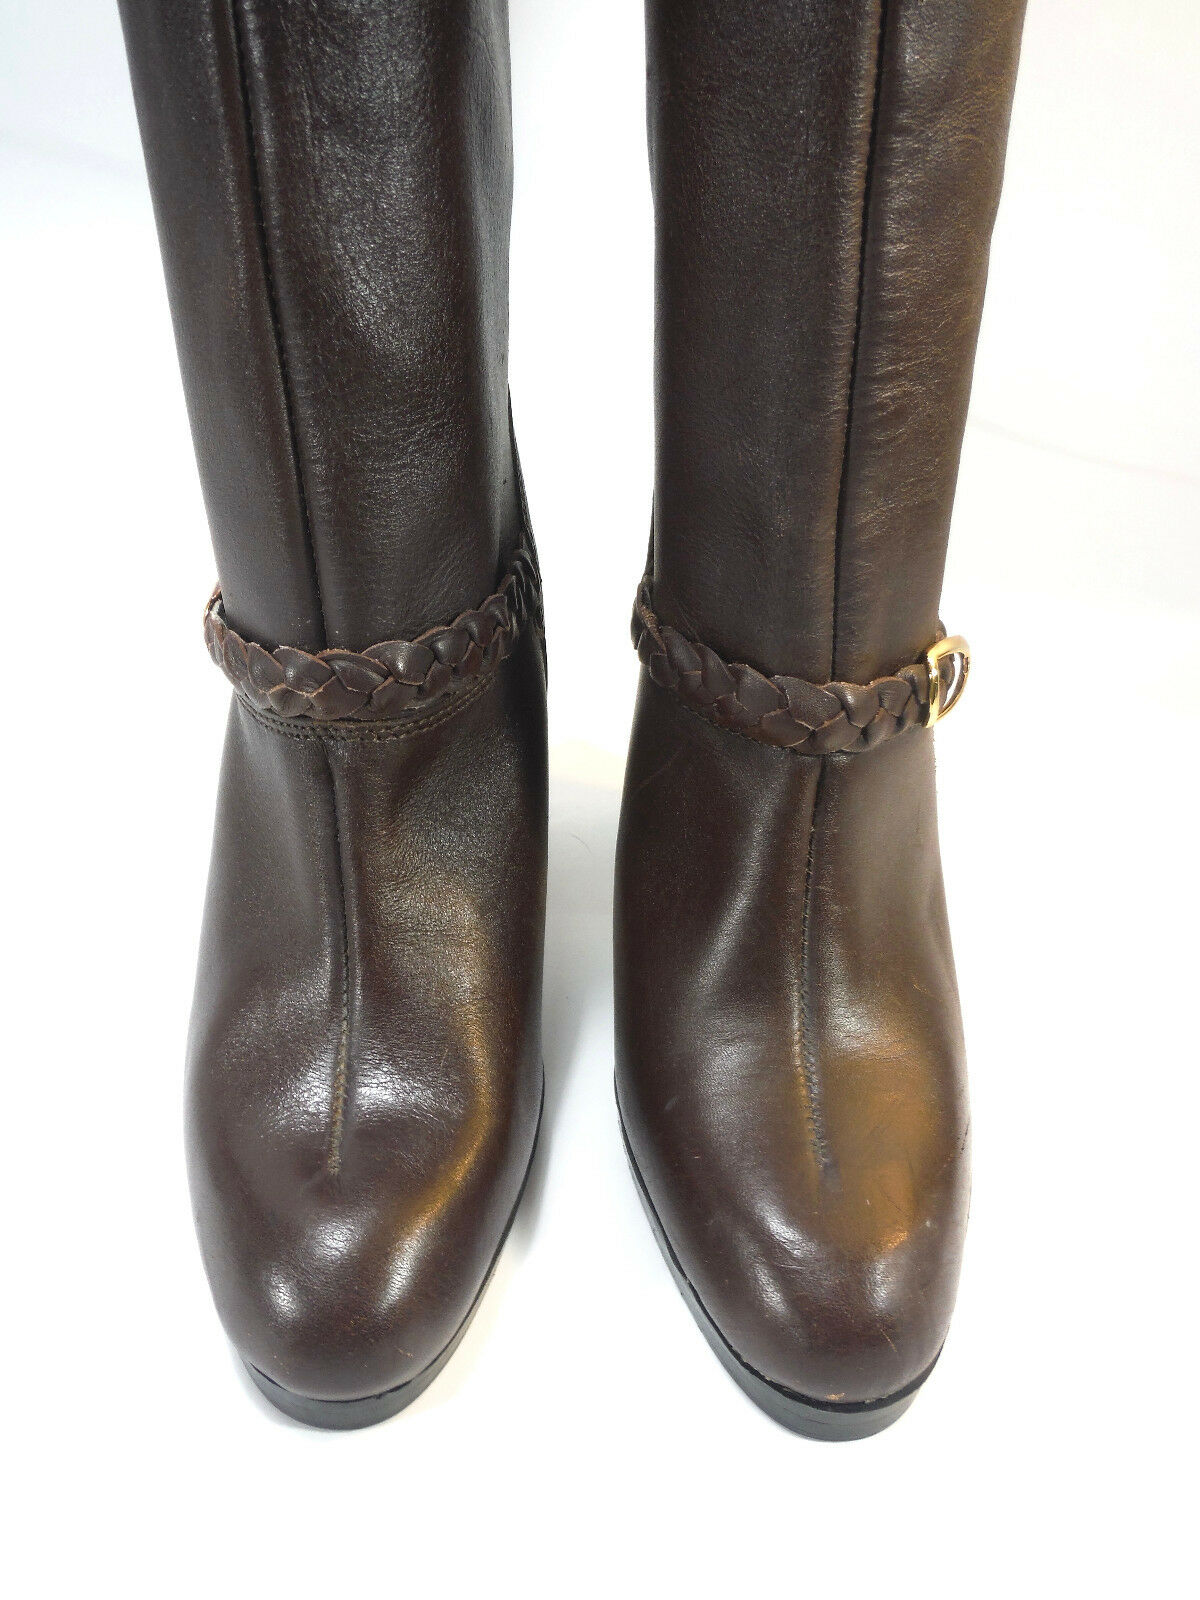 VINTAGE boot ITALIAN chestnut Braun Leder stove pipe harness casual boot VINTAGE 5.5 6d19b6